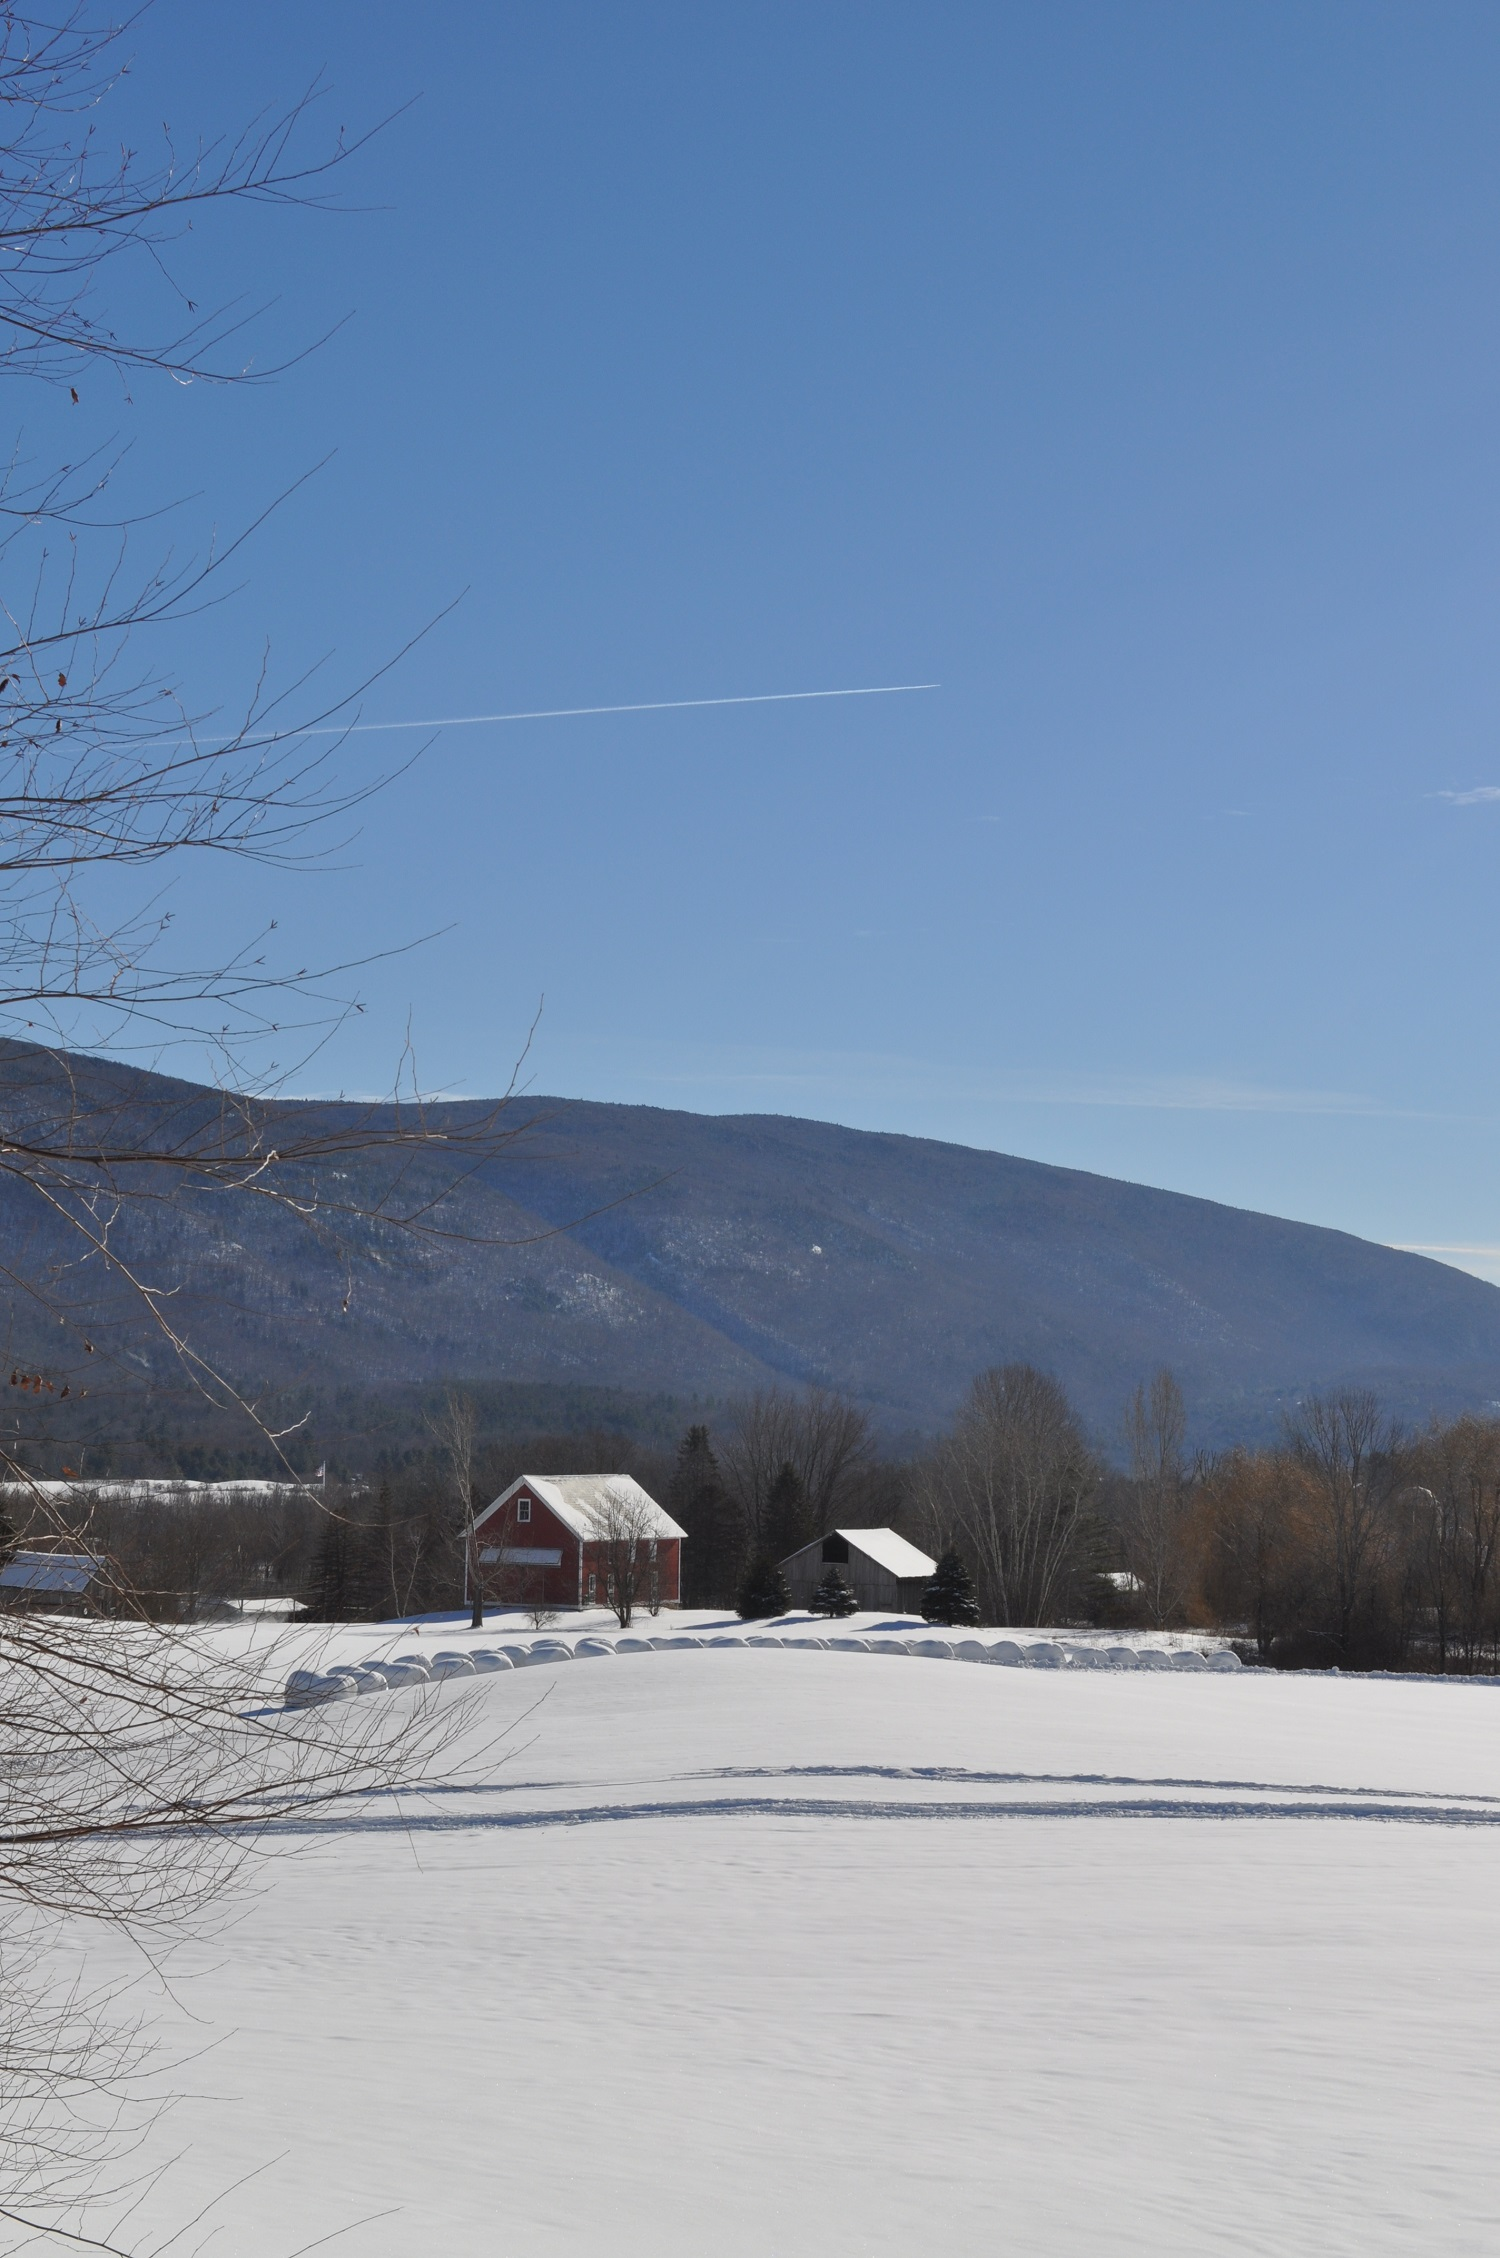 mettawee - vermont vacation home rentals image 2